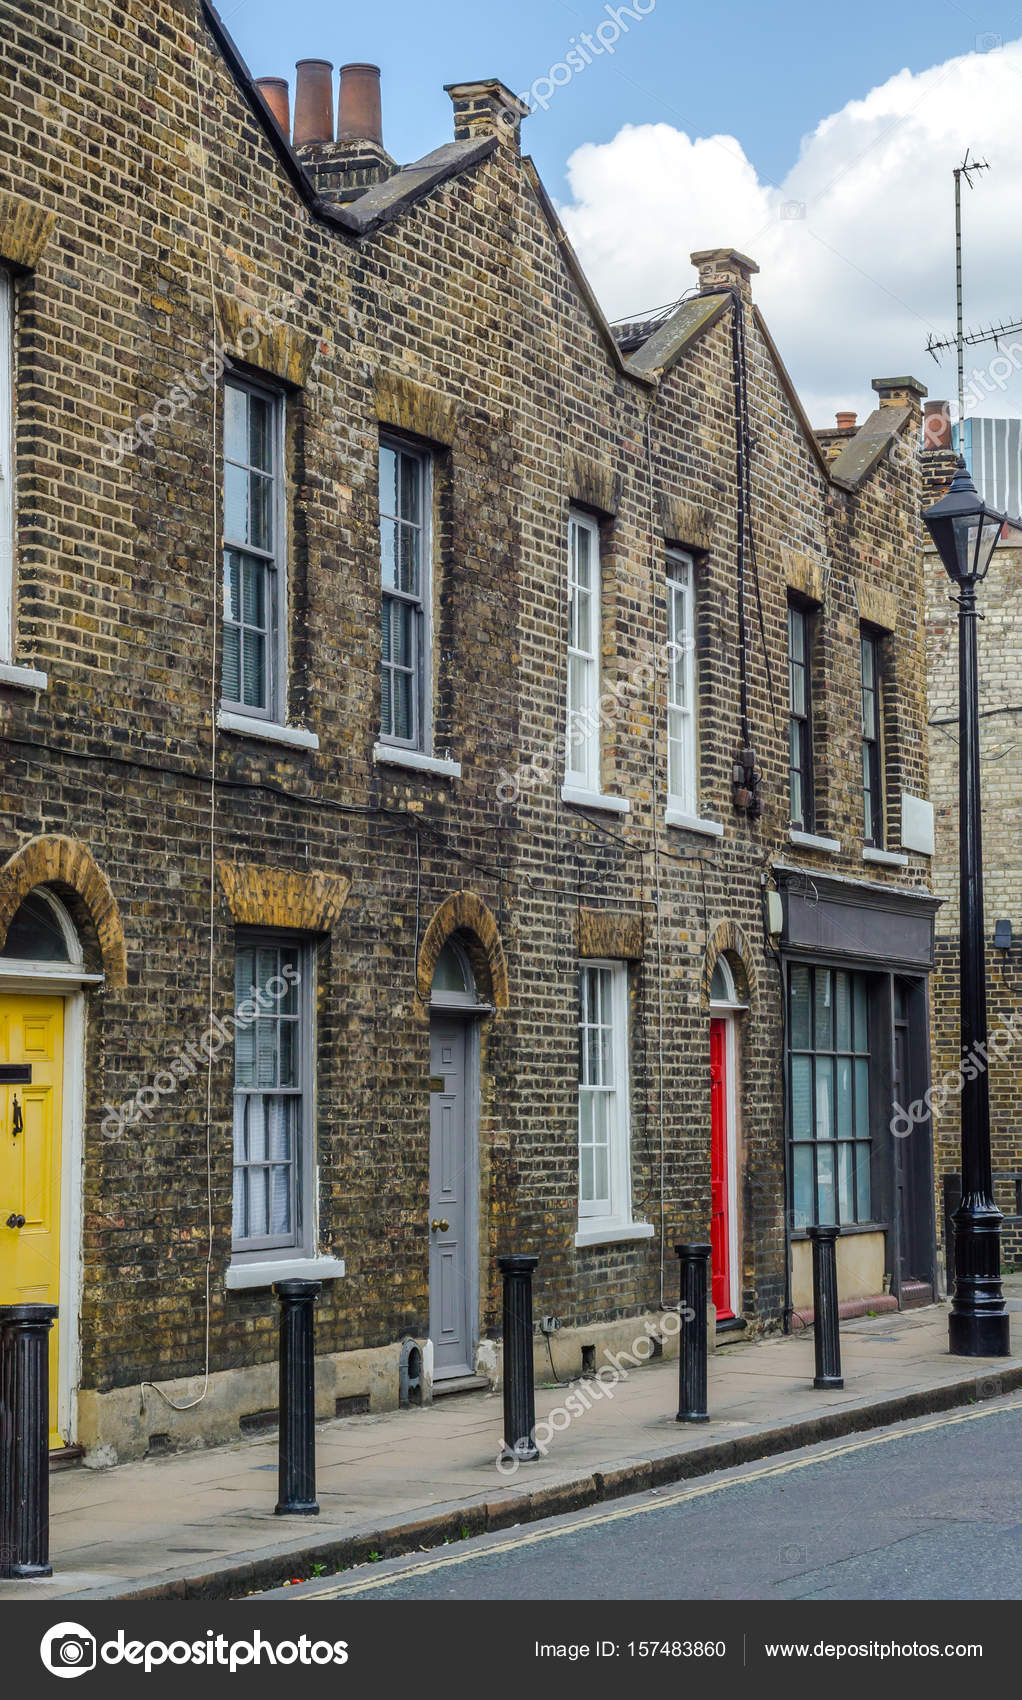 Typical Old English Buildings Low Brick Across A Narrow Street Interesting London Architecture Houses Photo By Q77photo